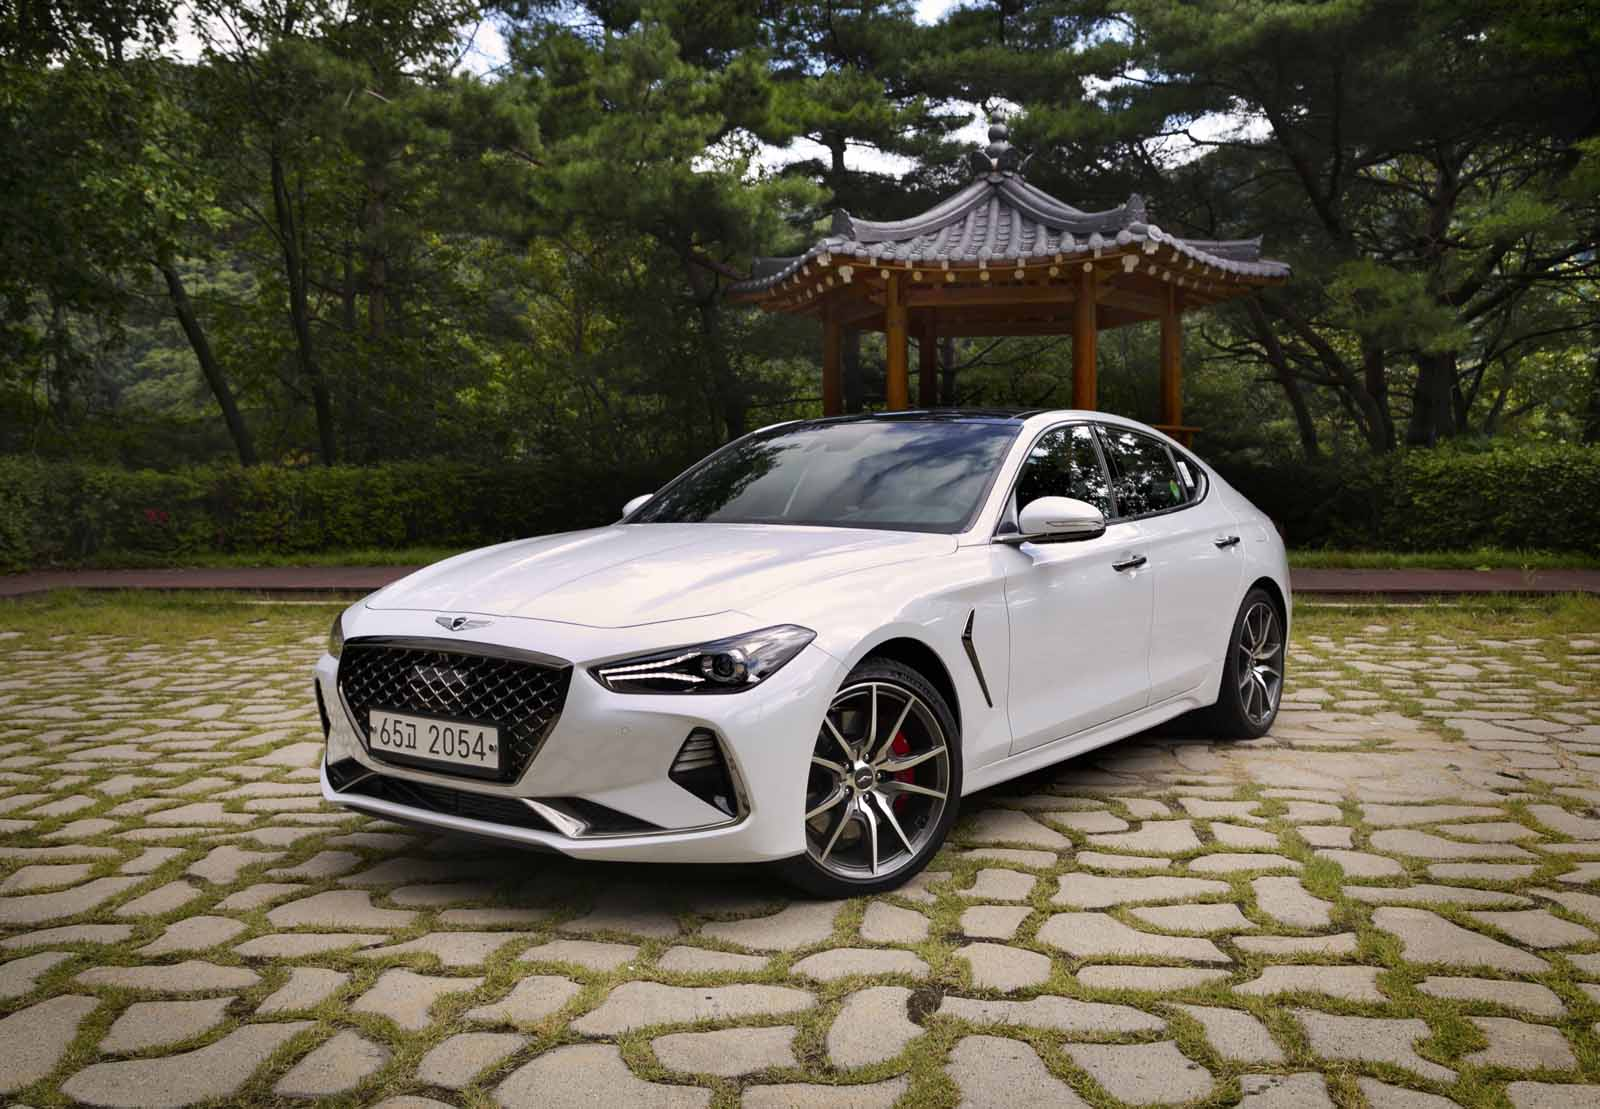 2018 genesis hp.  2018 2018 genesis g70 reviewwilson8  throughout genesis hp